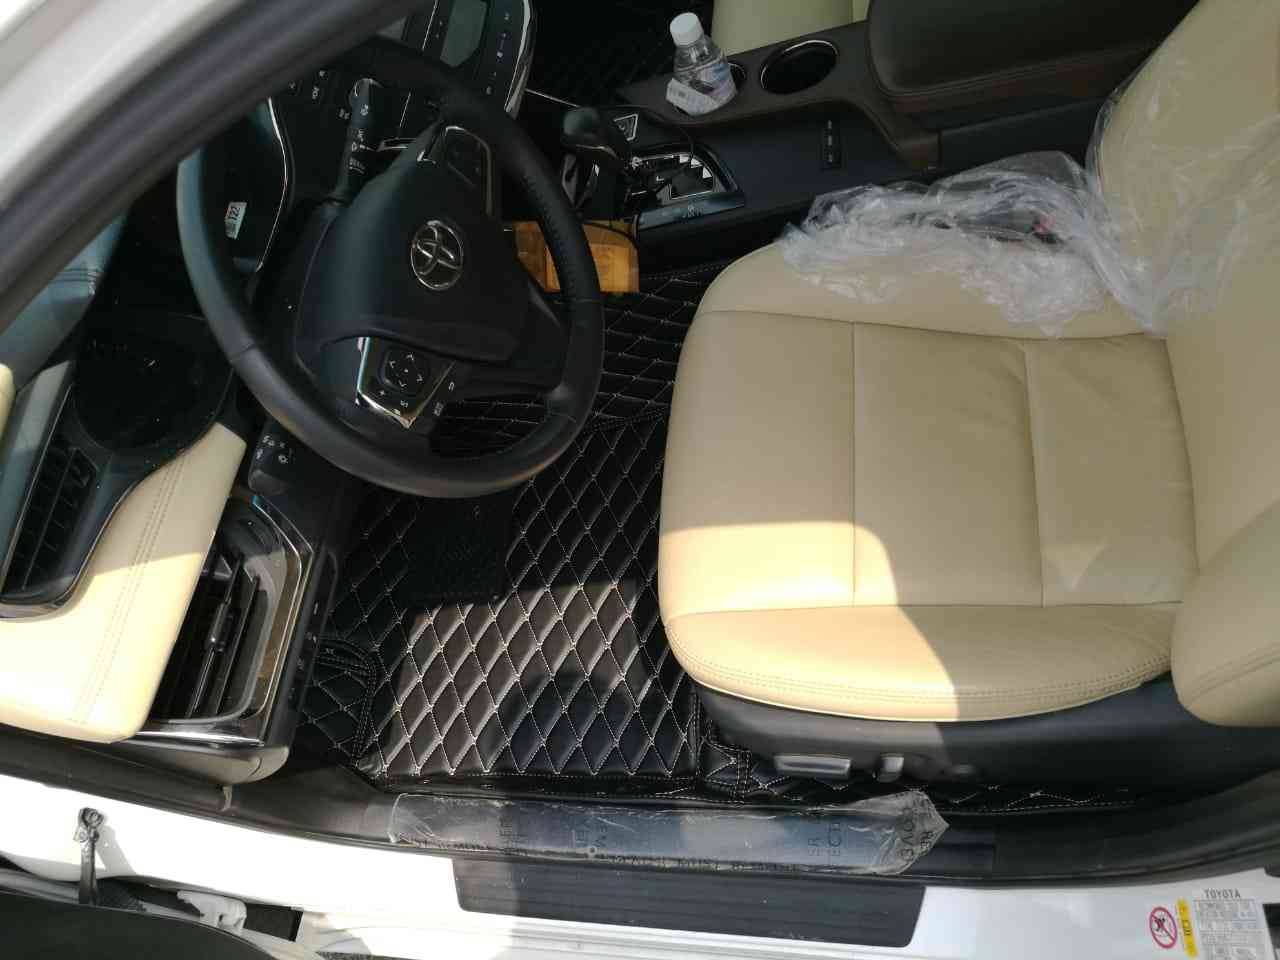 Lexus LX 570 SUV 2017 GCC is very clean like brand new with warranty,White 2017 model, This car has automatic transmission.GCC specs. CONTACT EMAIL: Mrharry1931-  ارضيات جلد دايمن فاخرة...